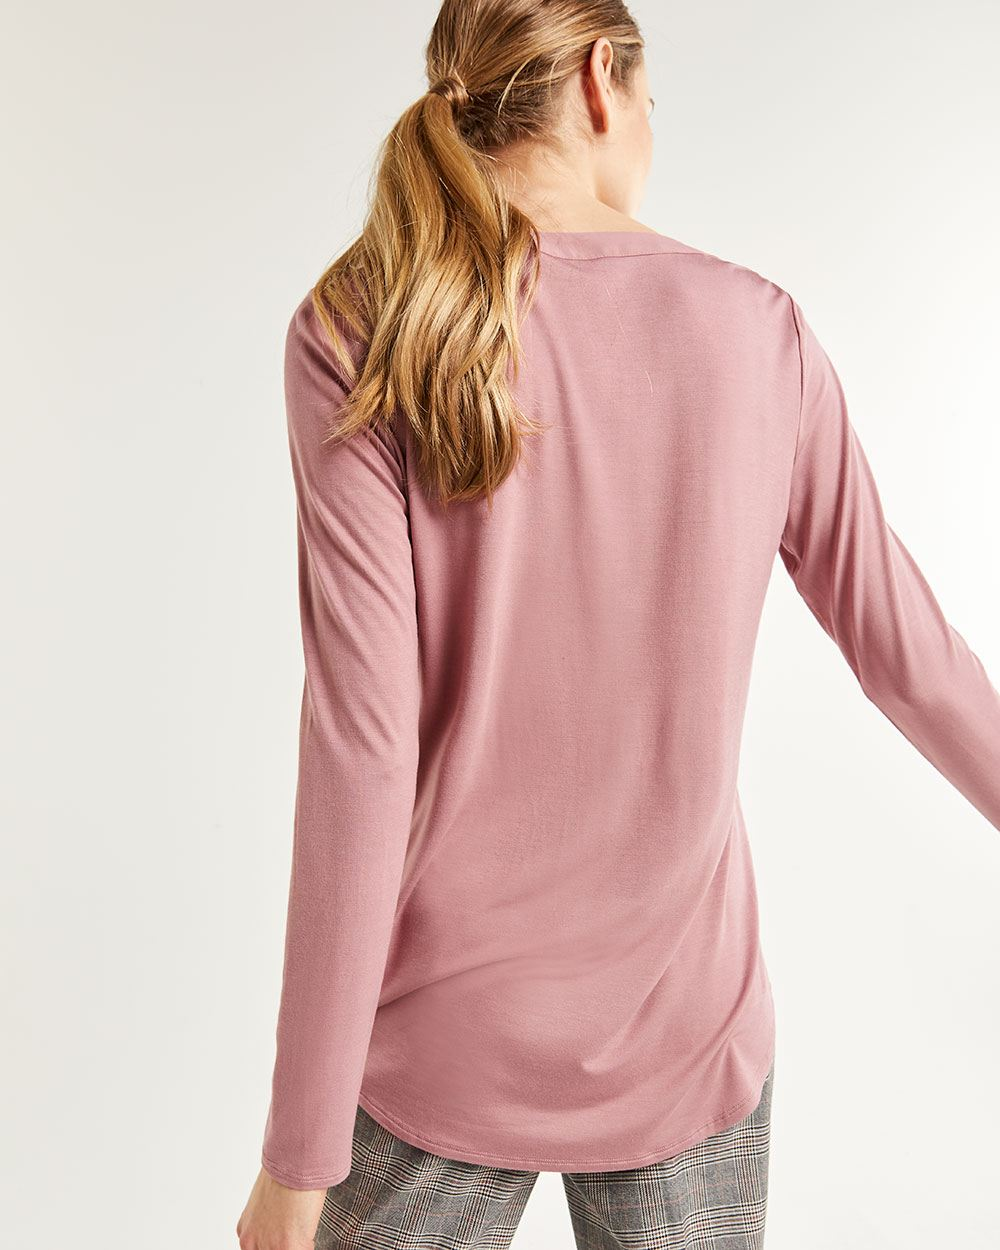 Long Sleeve Mix Media Buttoned Tee